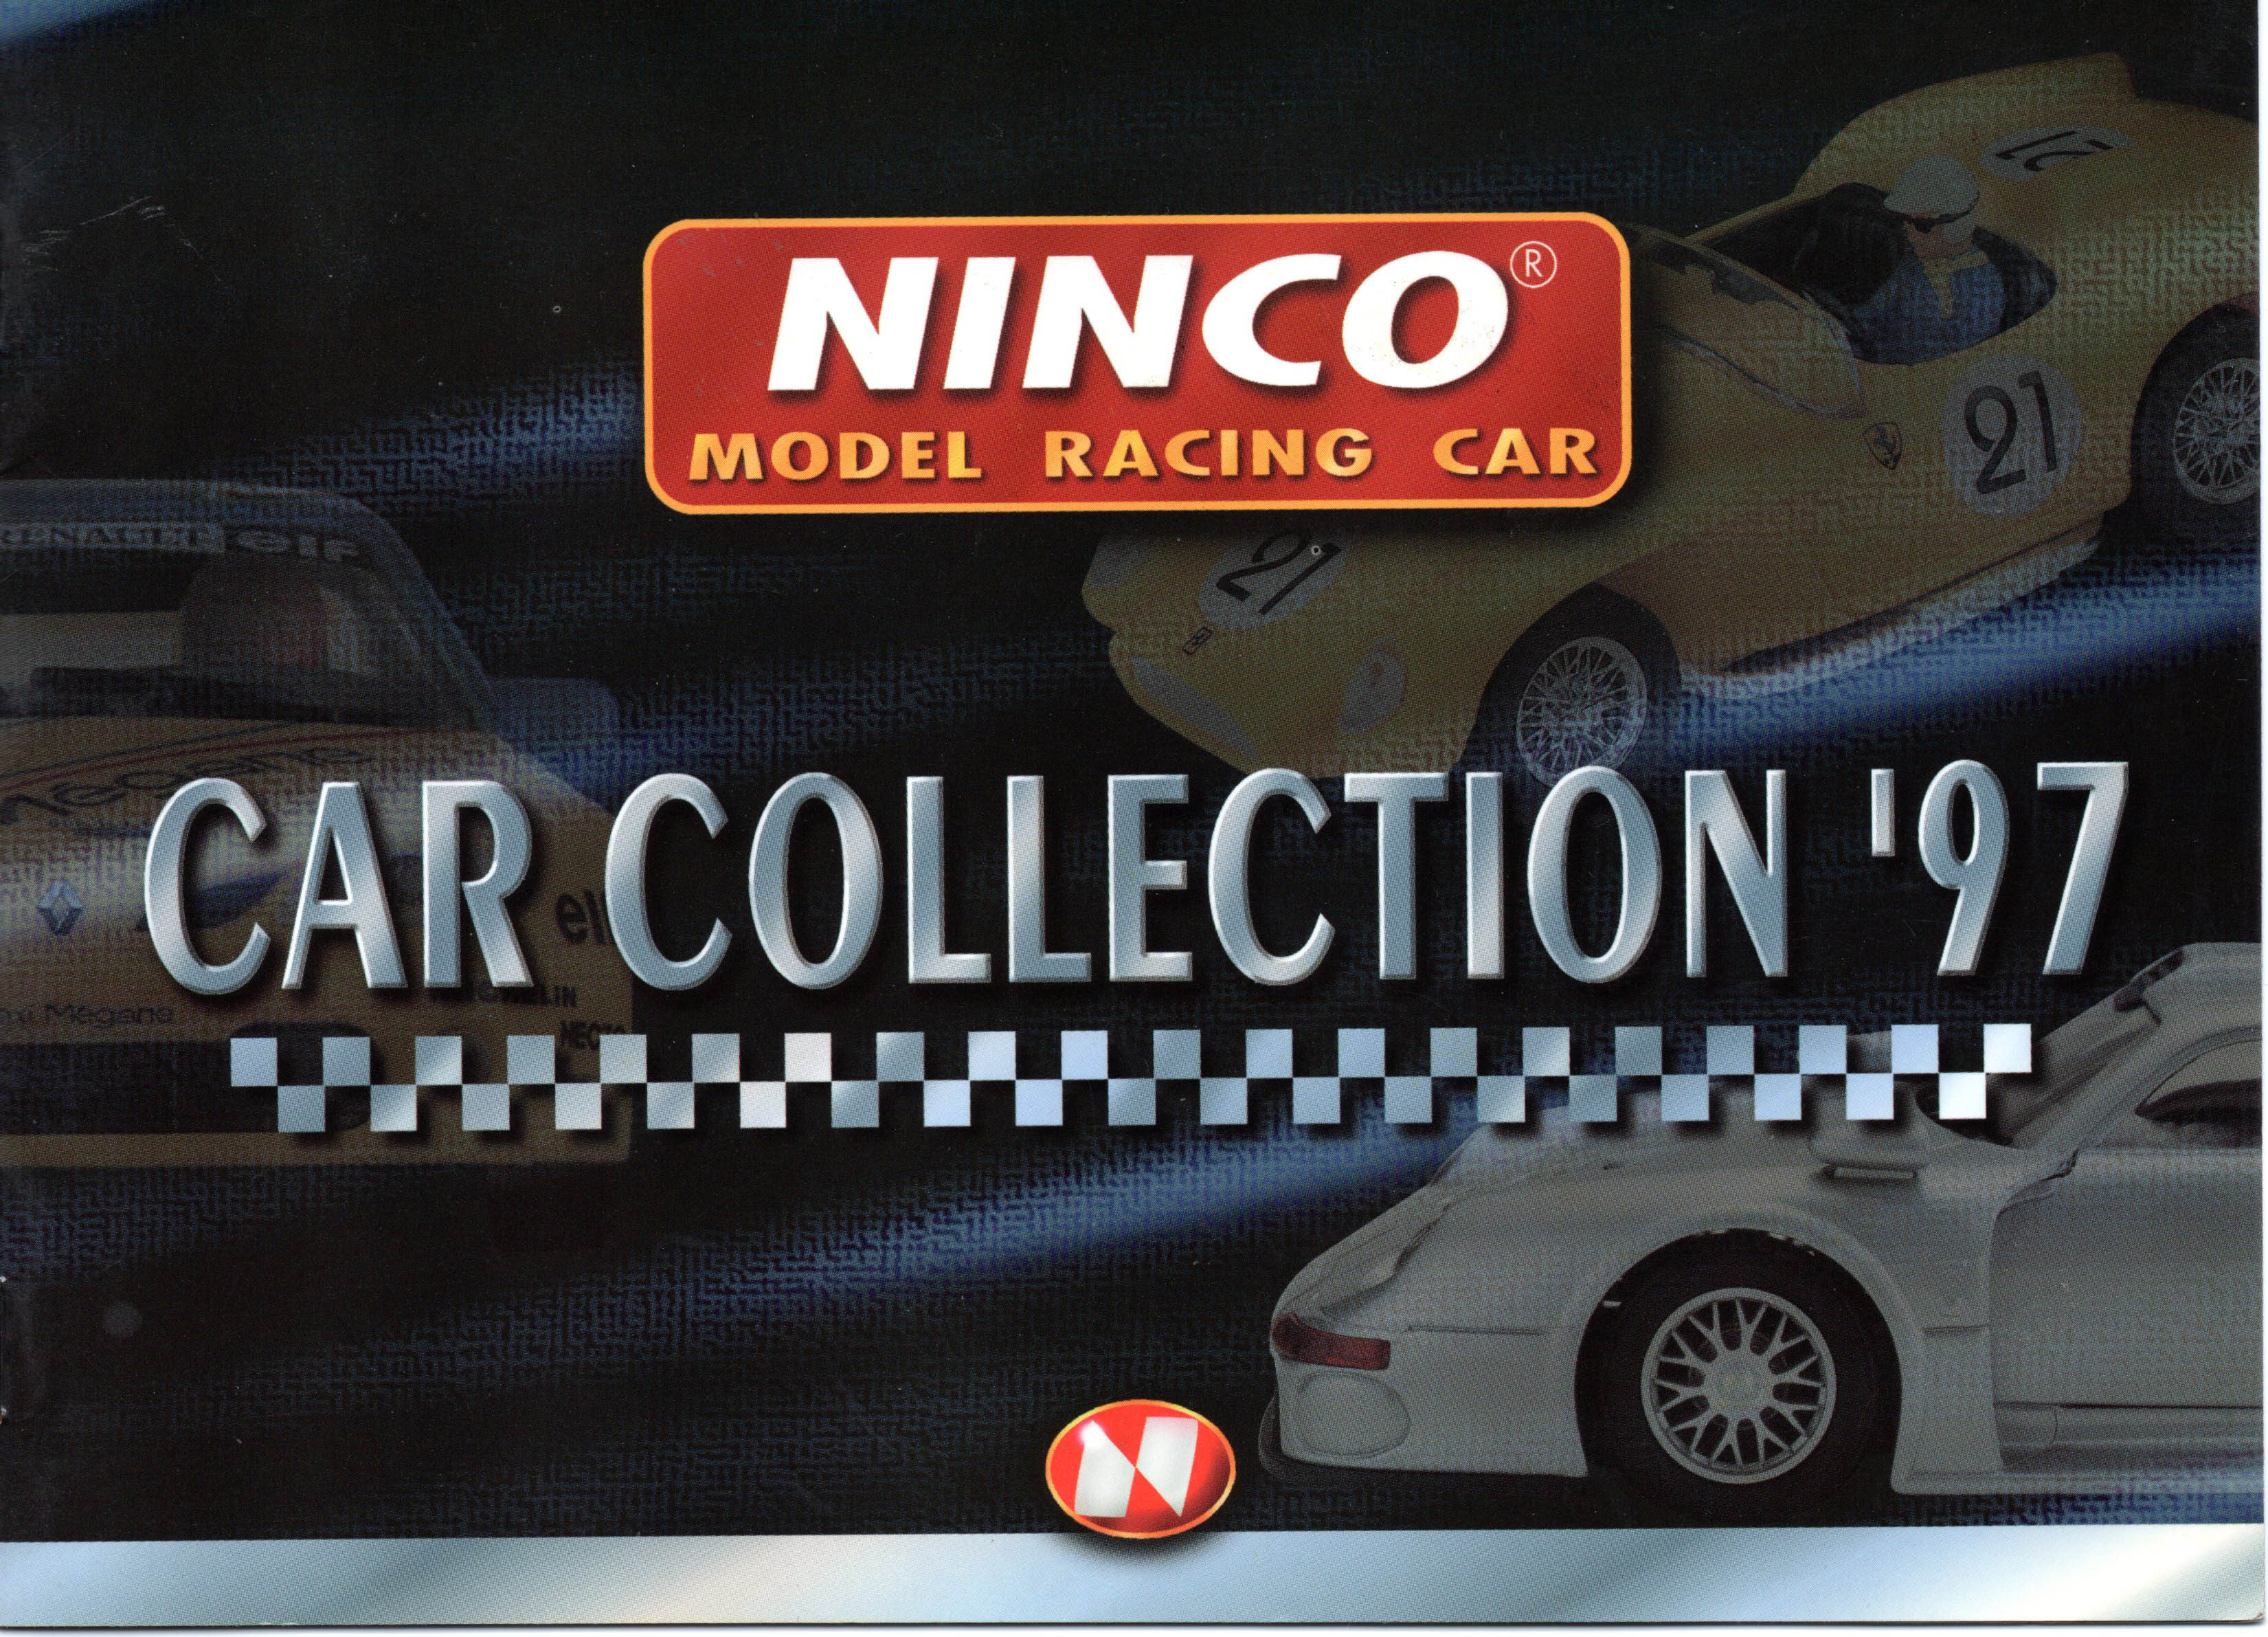 Collection (car 1997